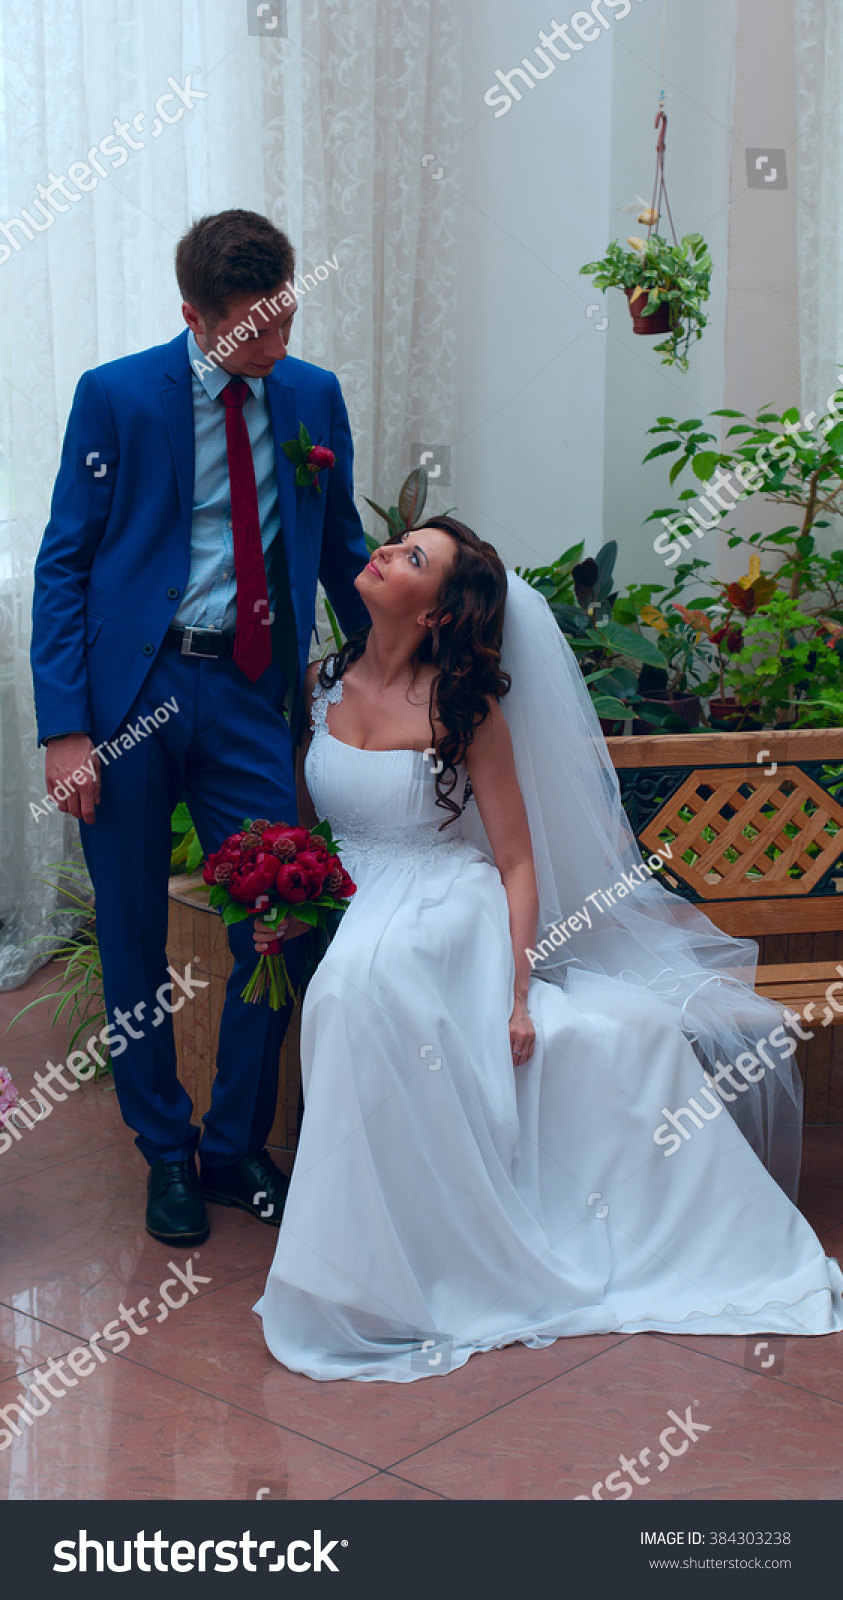 Groom Blue Suit Bride White Dress Stock Photo (Royalty Free ...